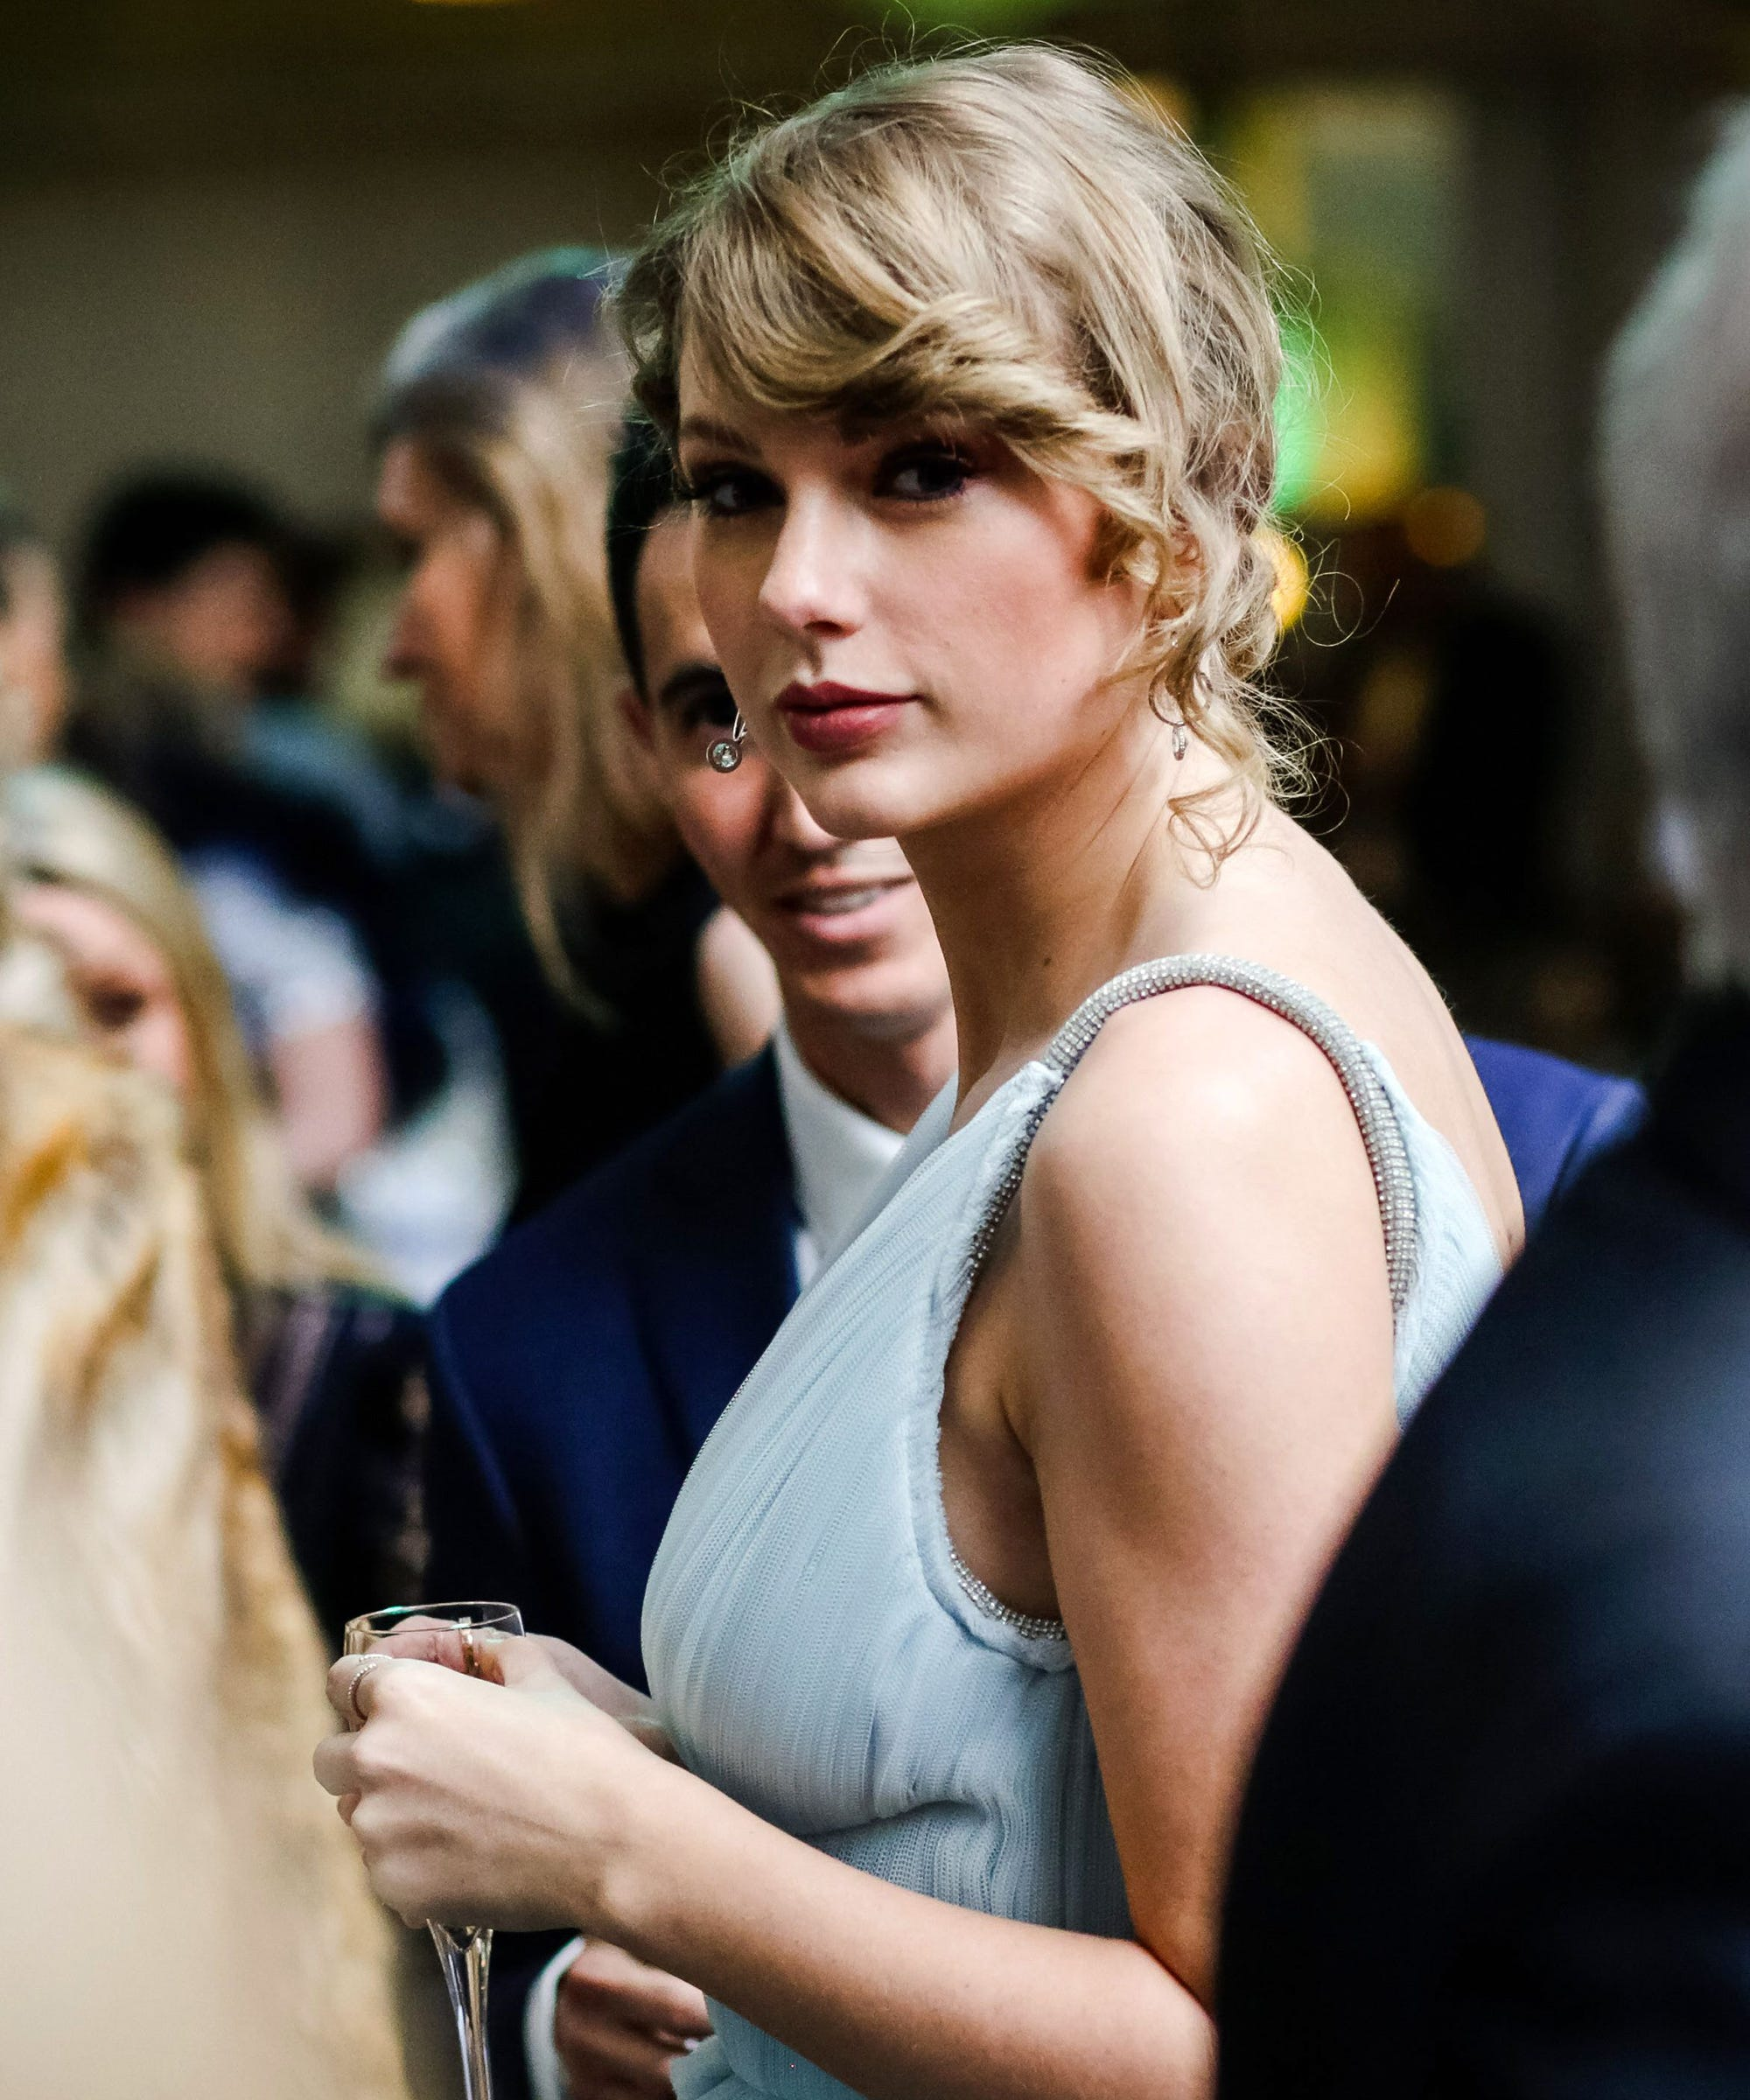 Is Taylor Swift Going To The 2019 Grammy Awards